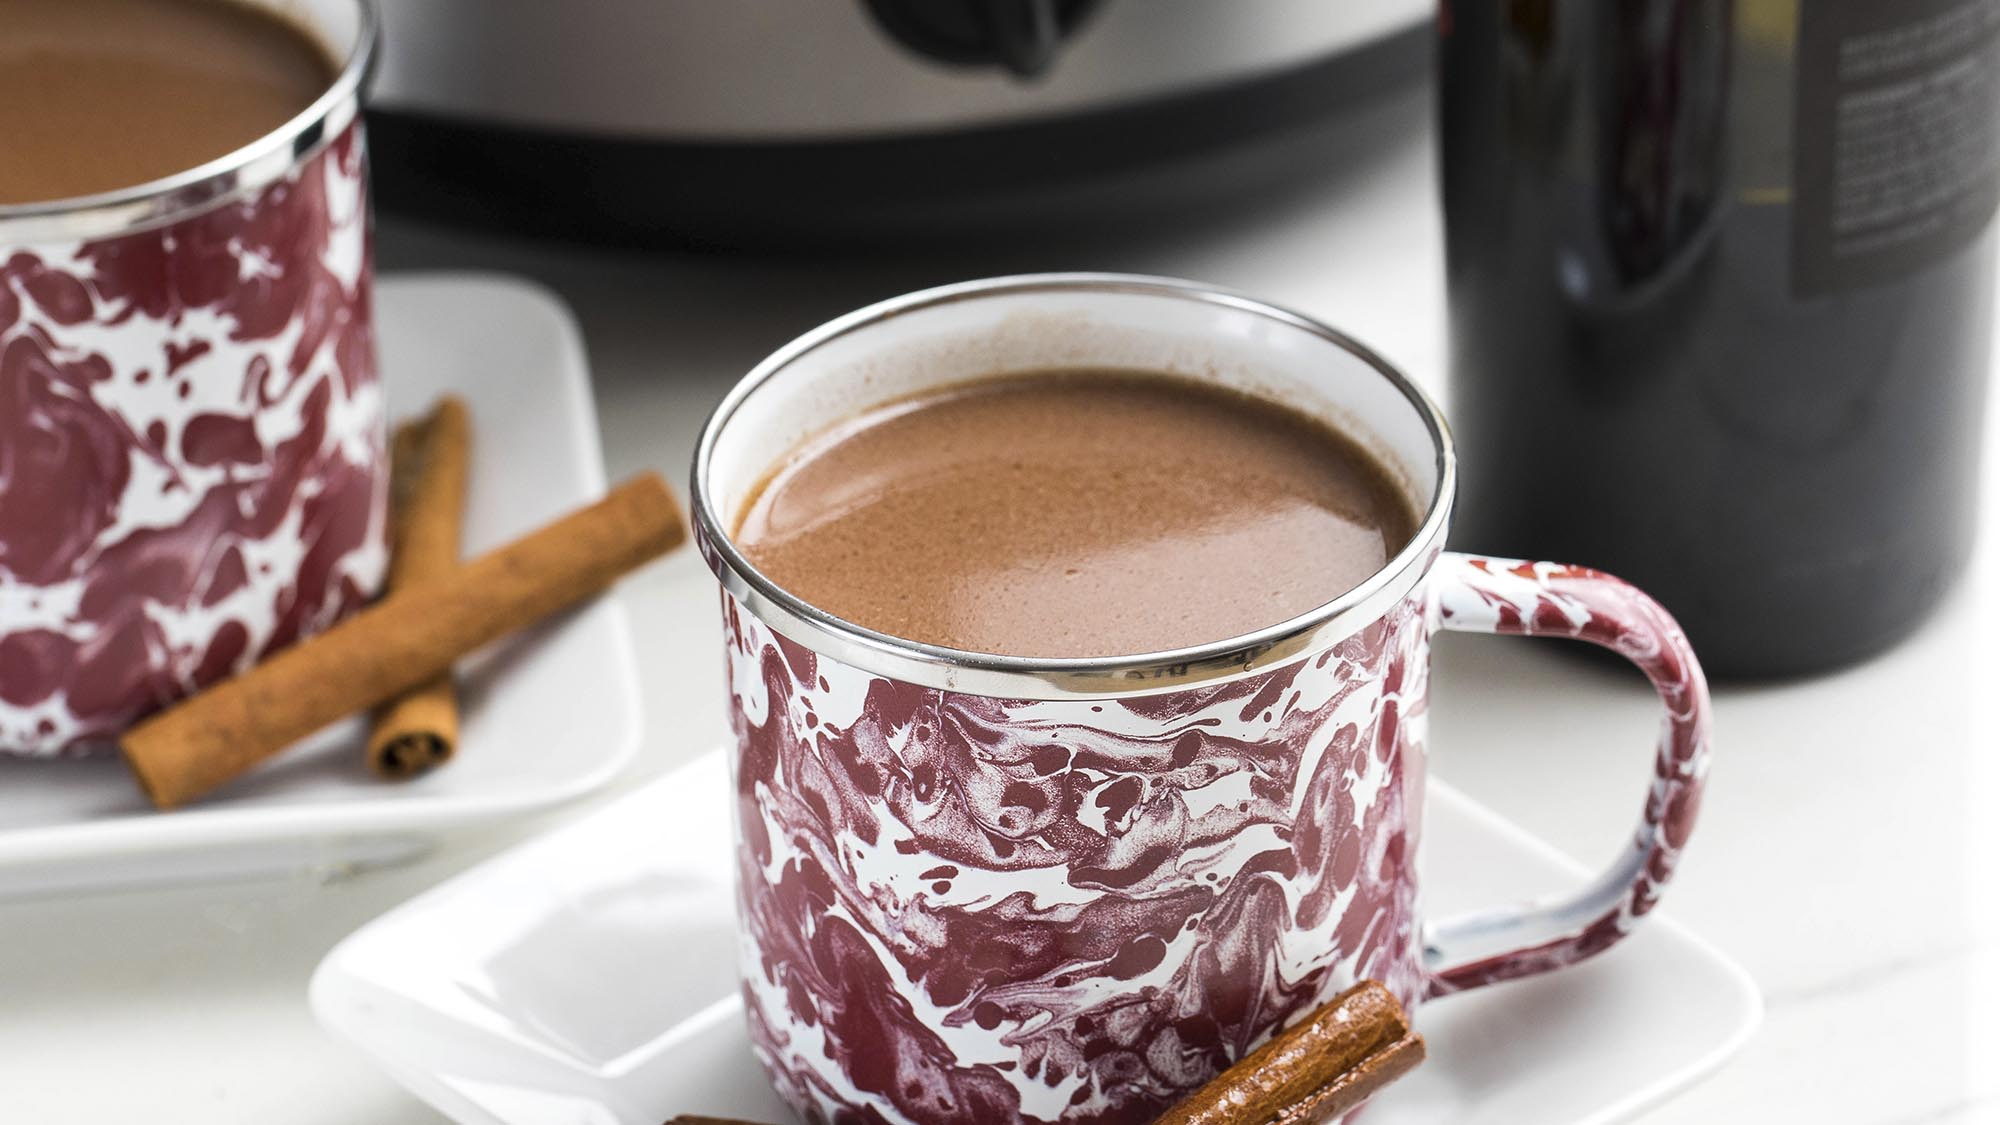 McCormick Slow Cooker Red Hot Chocolate